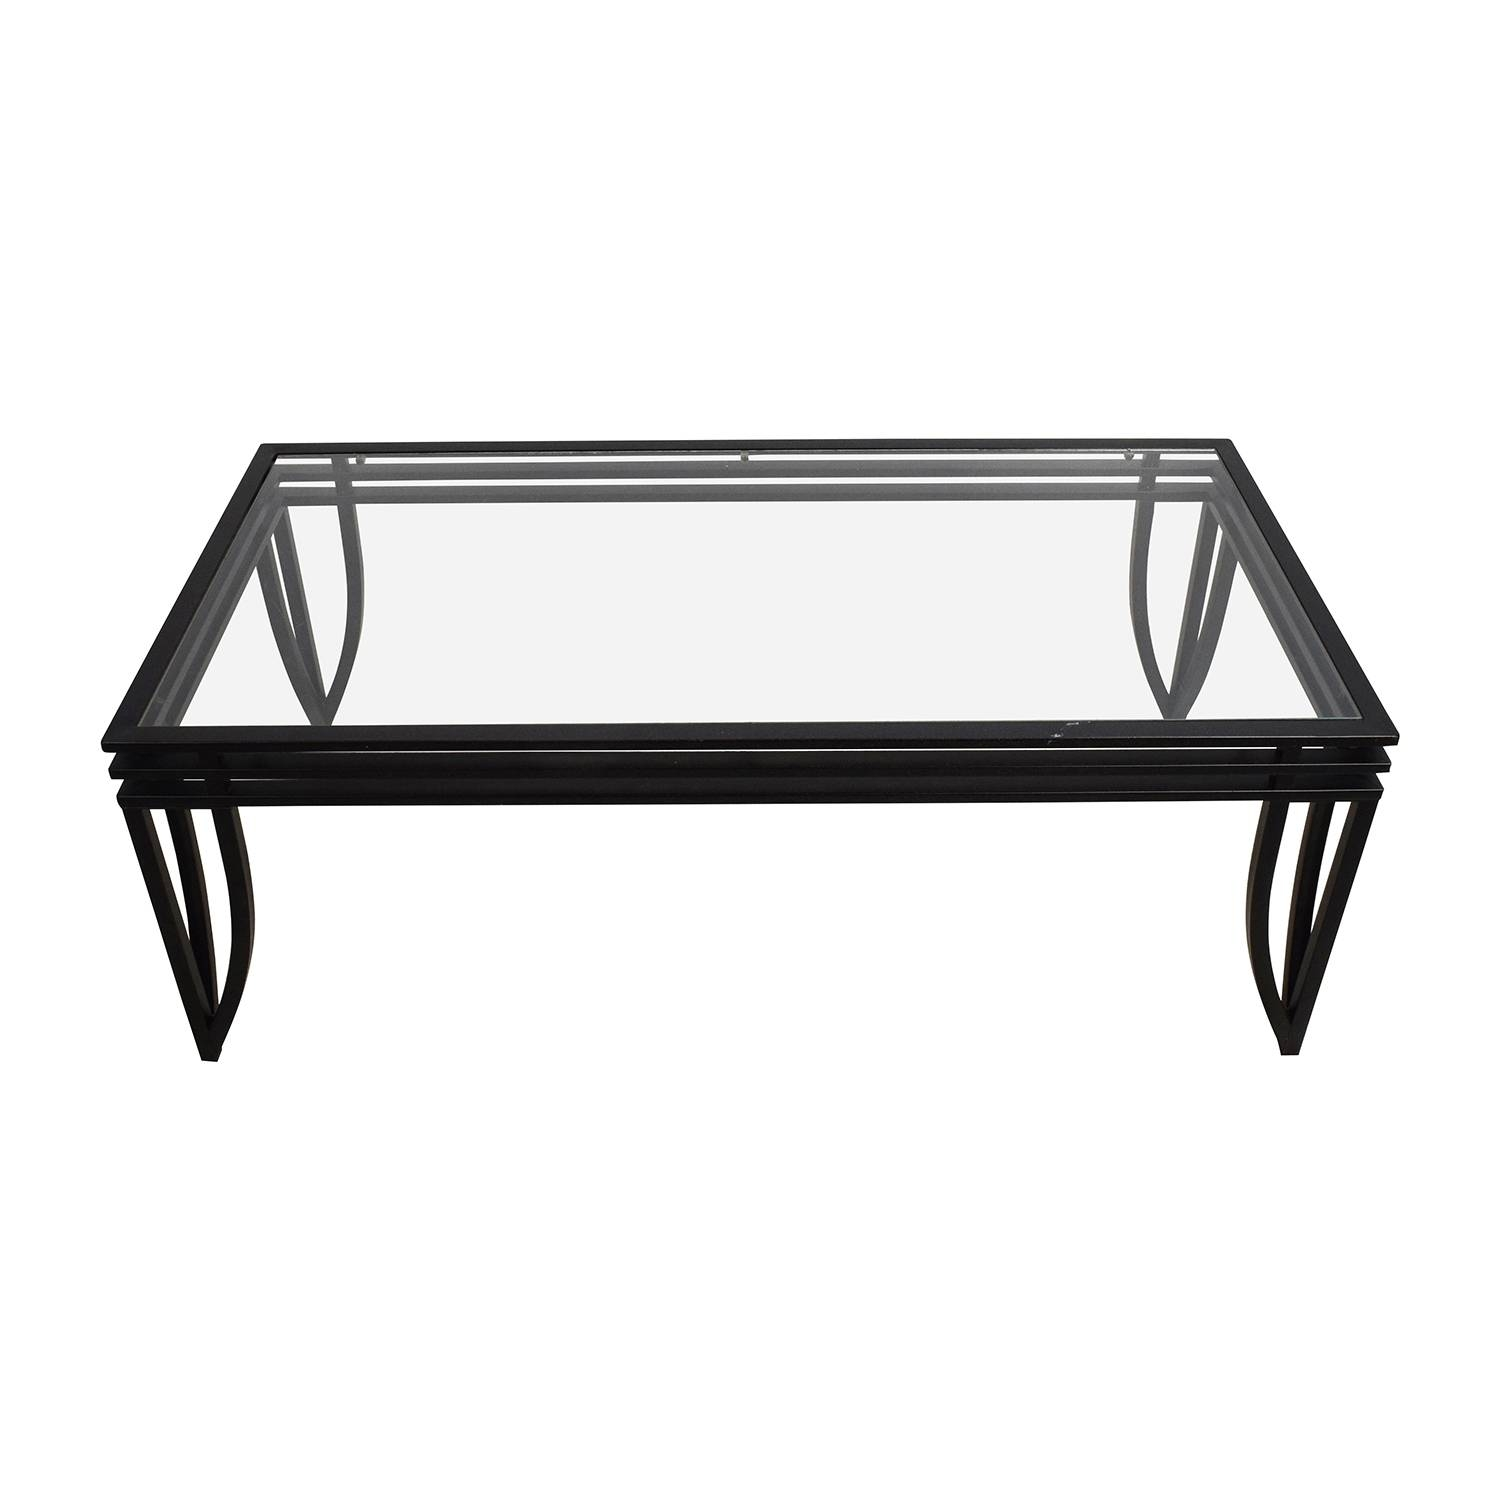 77% Off - Ashley Furniture Ashley Furniture Rectangular Glass And intended for Glass And Black Coffee Tables (Image 1 of 30)